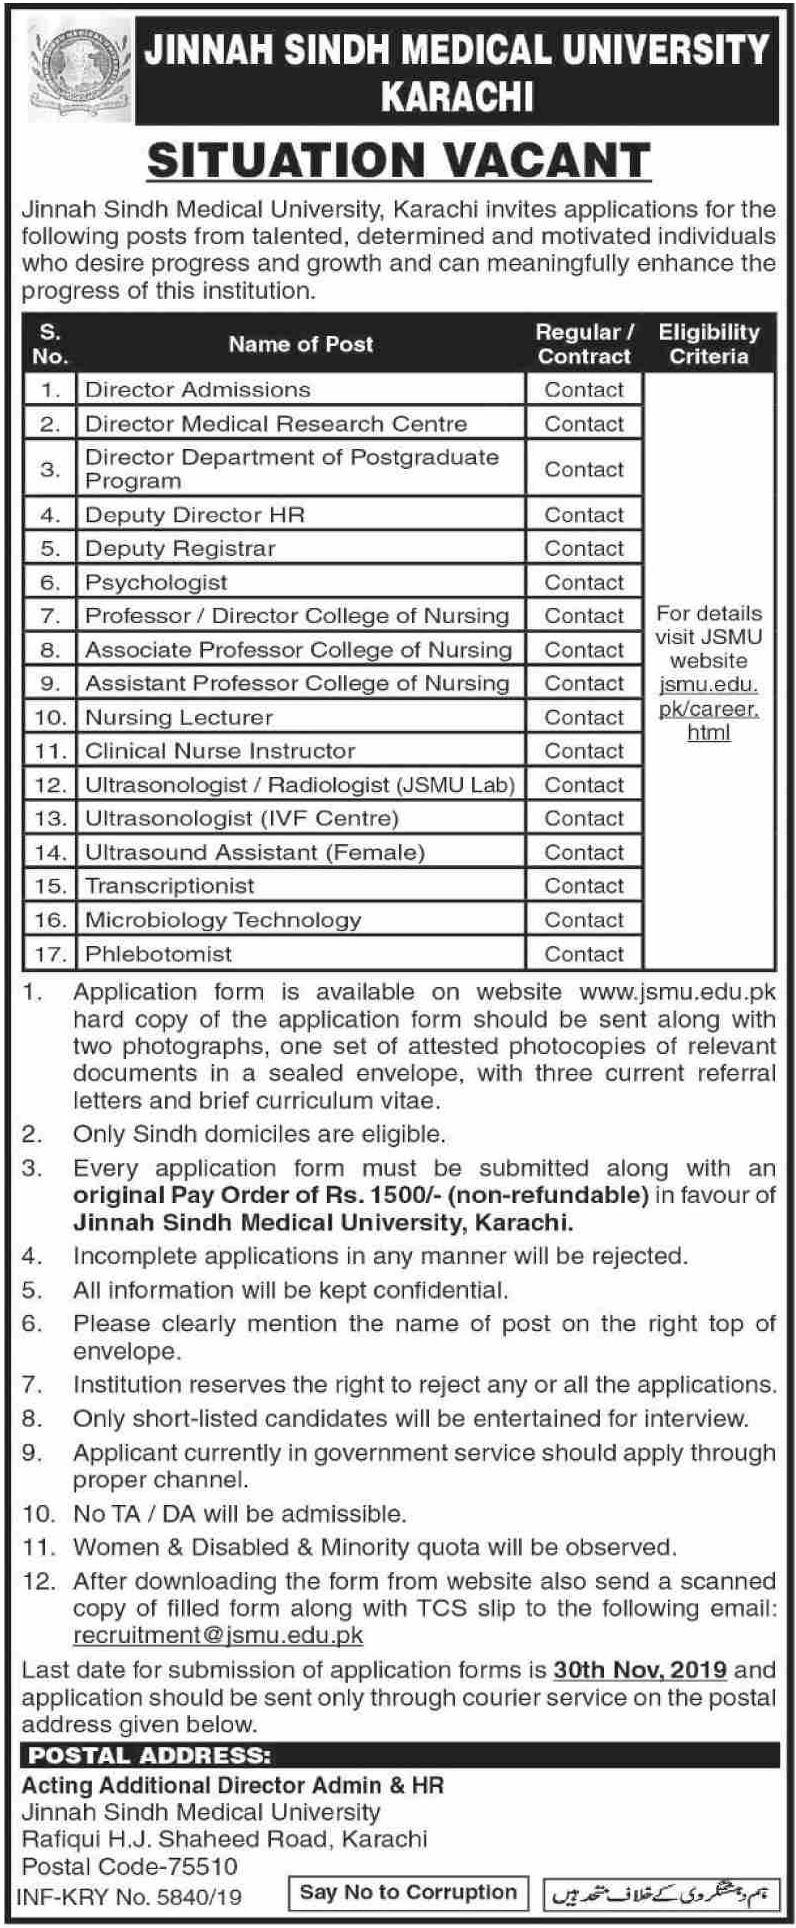 JSMU Karachi Jobs 2019 Jinnah Sindh Medical University